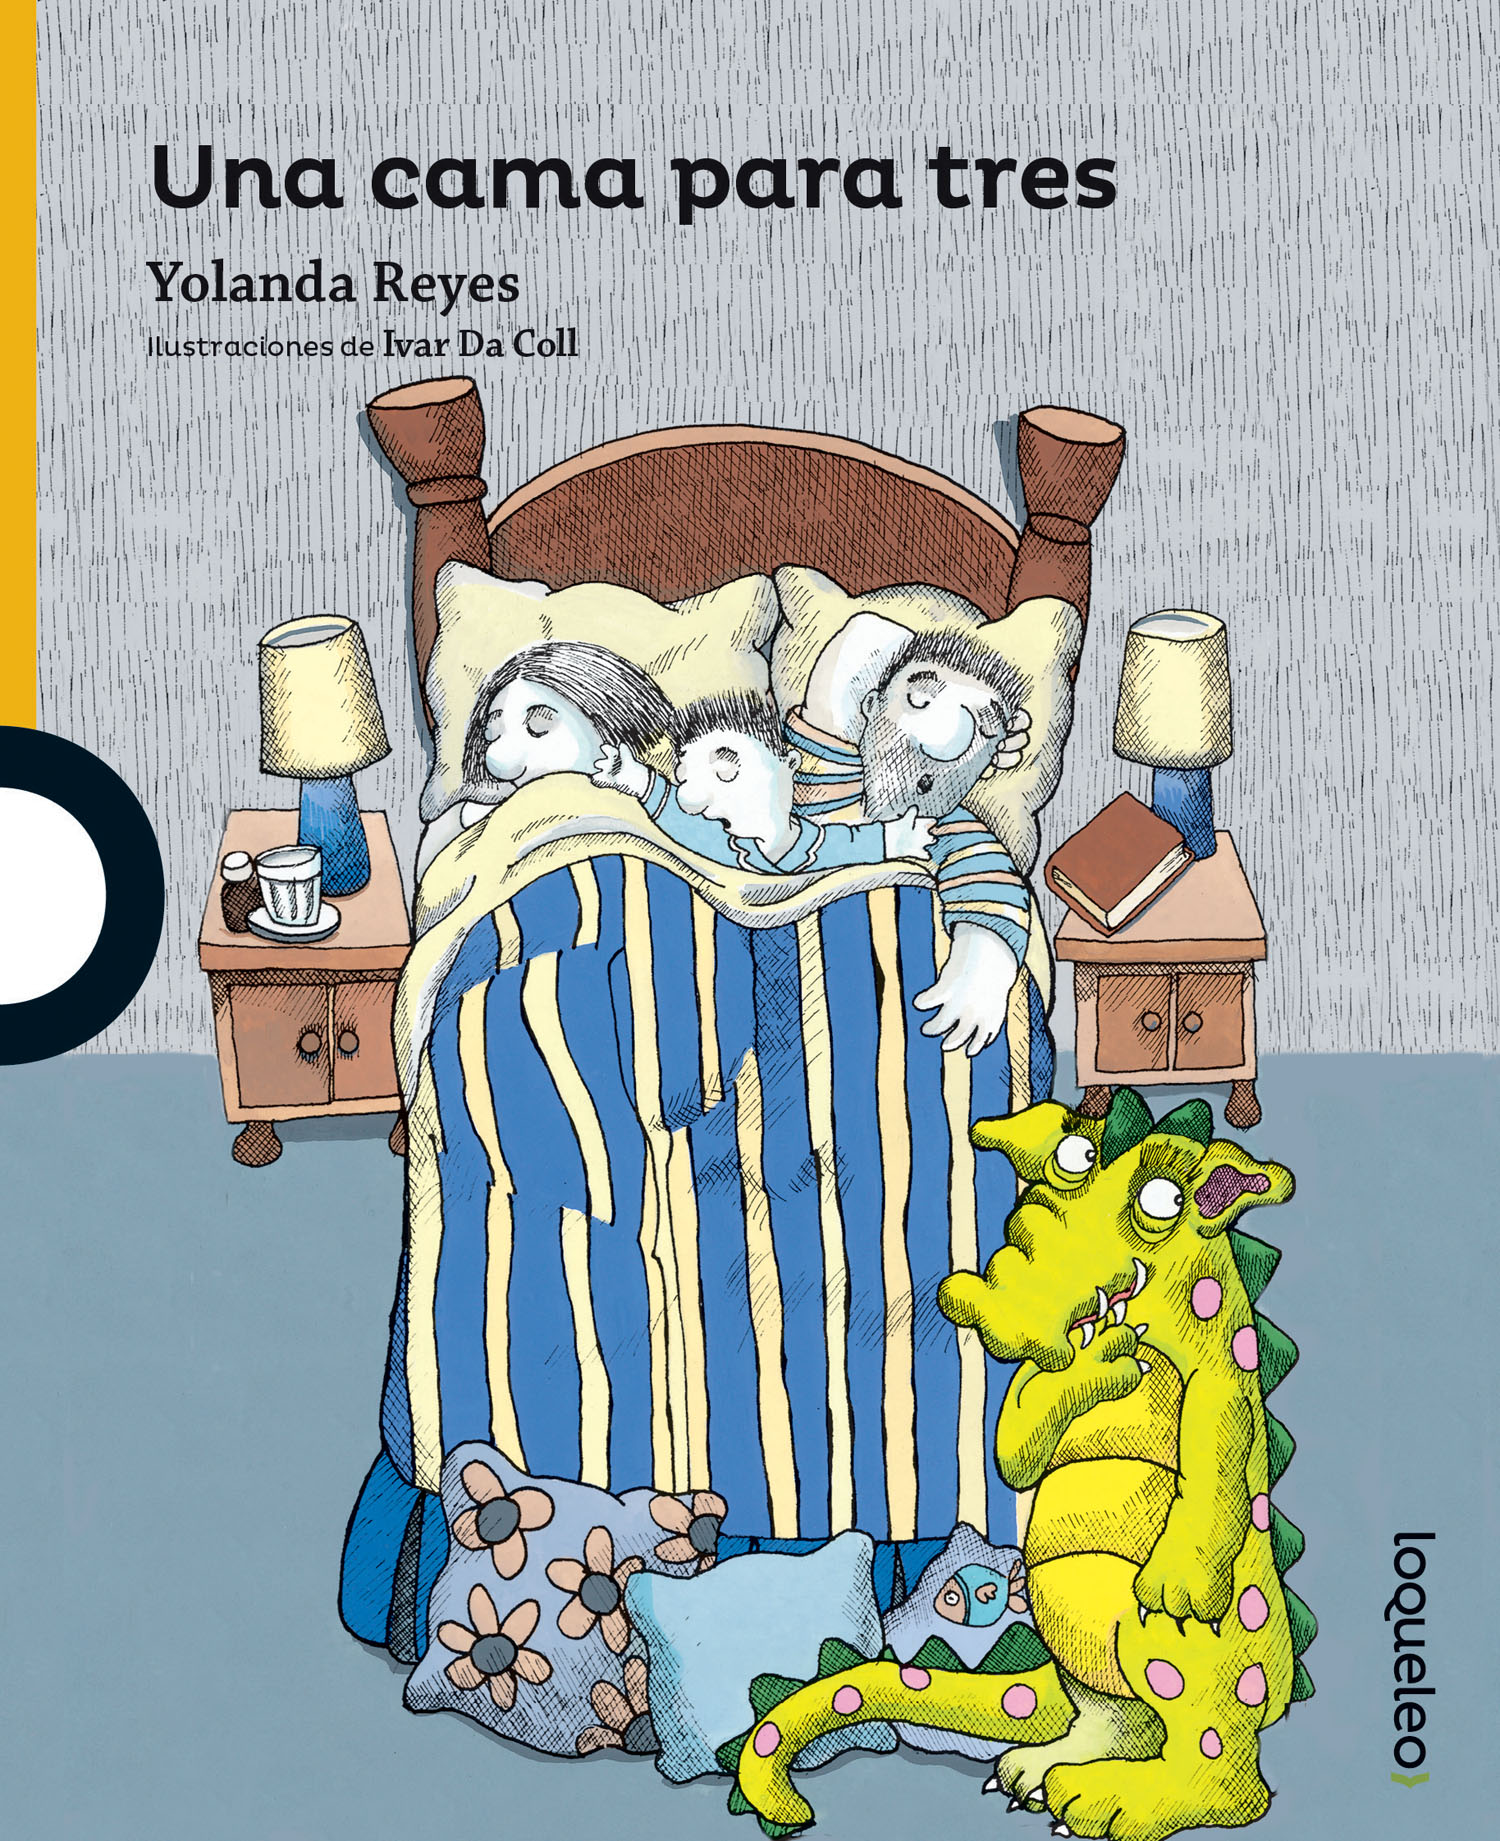 A bed for Three (Una cama para tres)